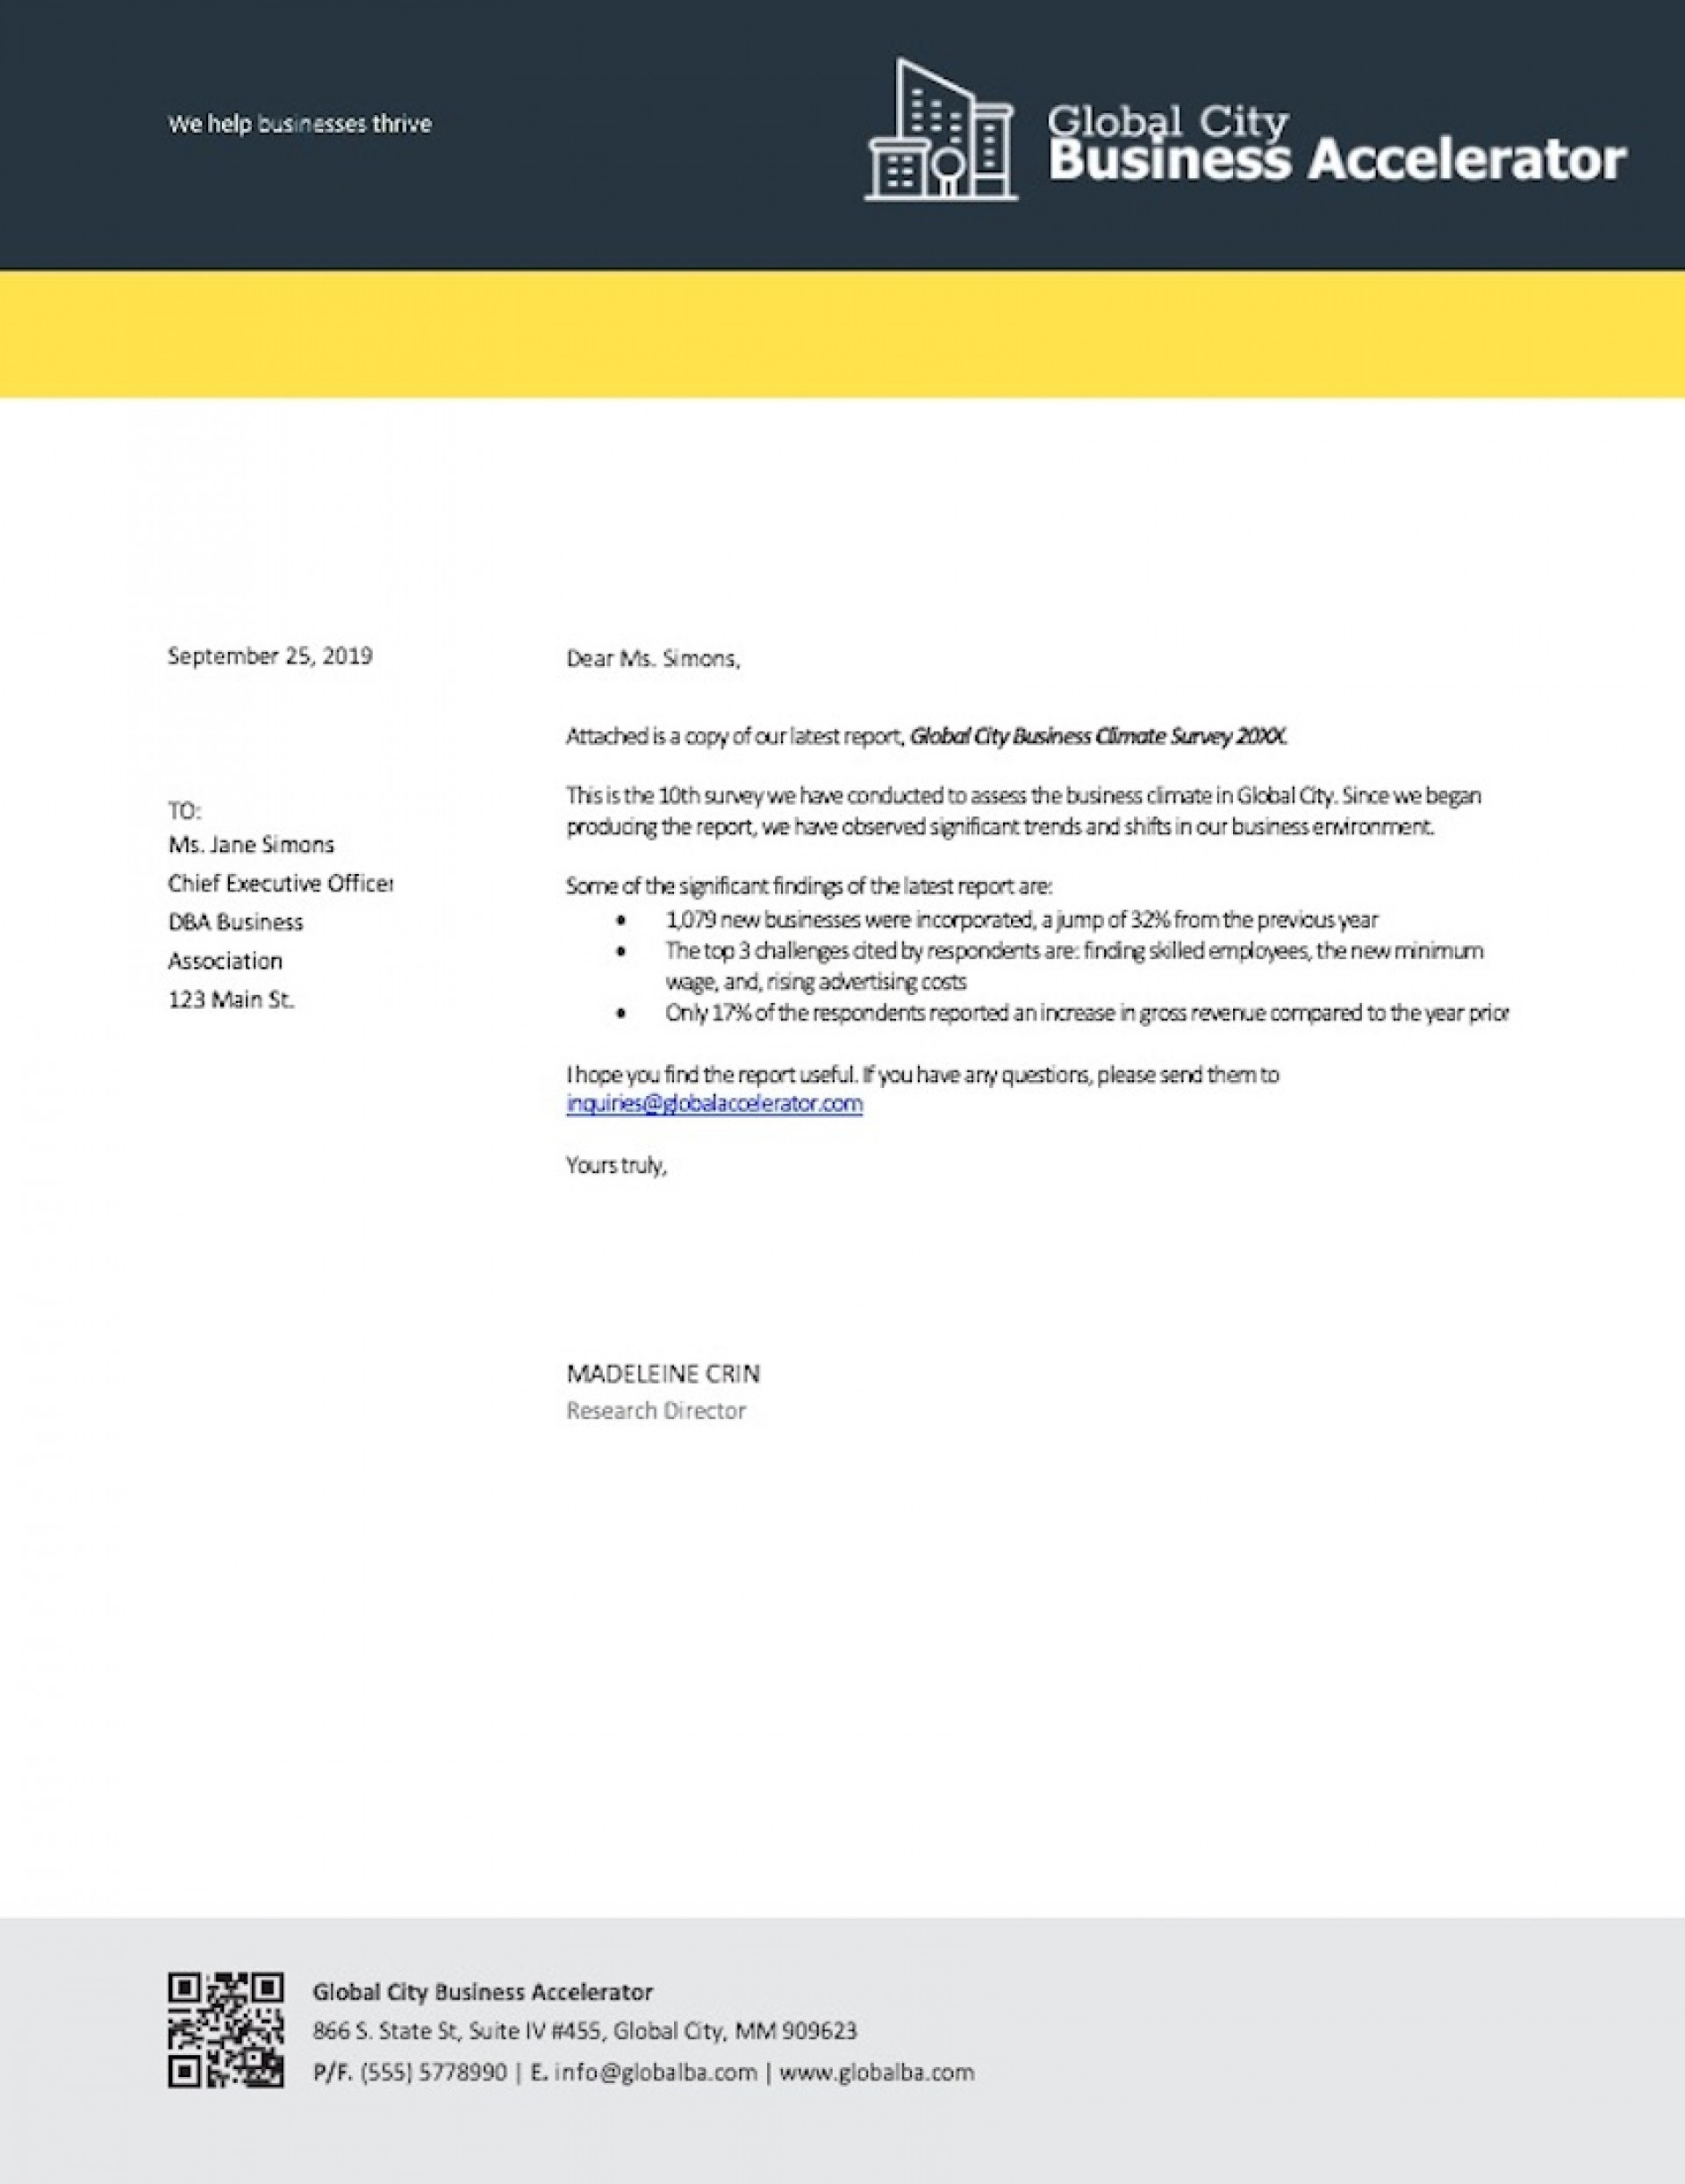 006 Exceptional Letter Template Microsoft Word Concept  Naval Format 2010 20071920